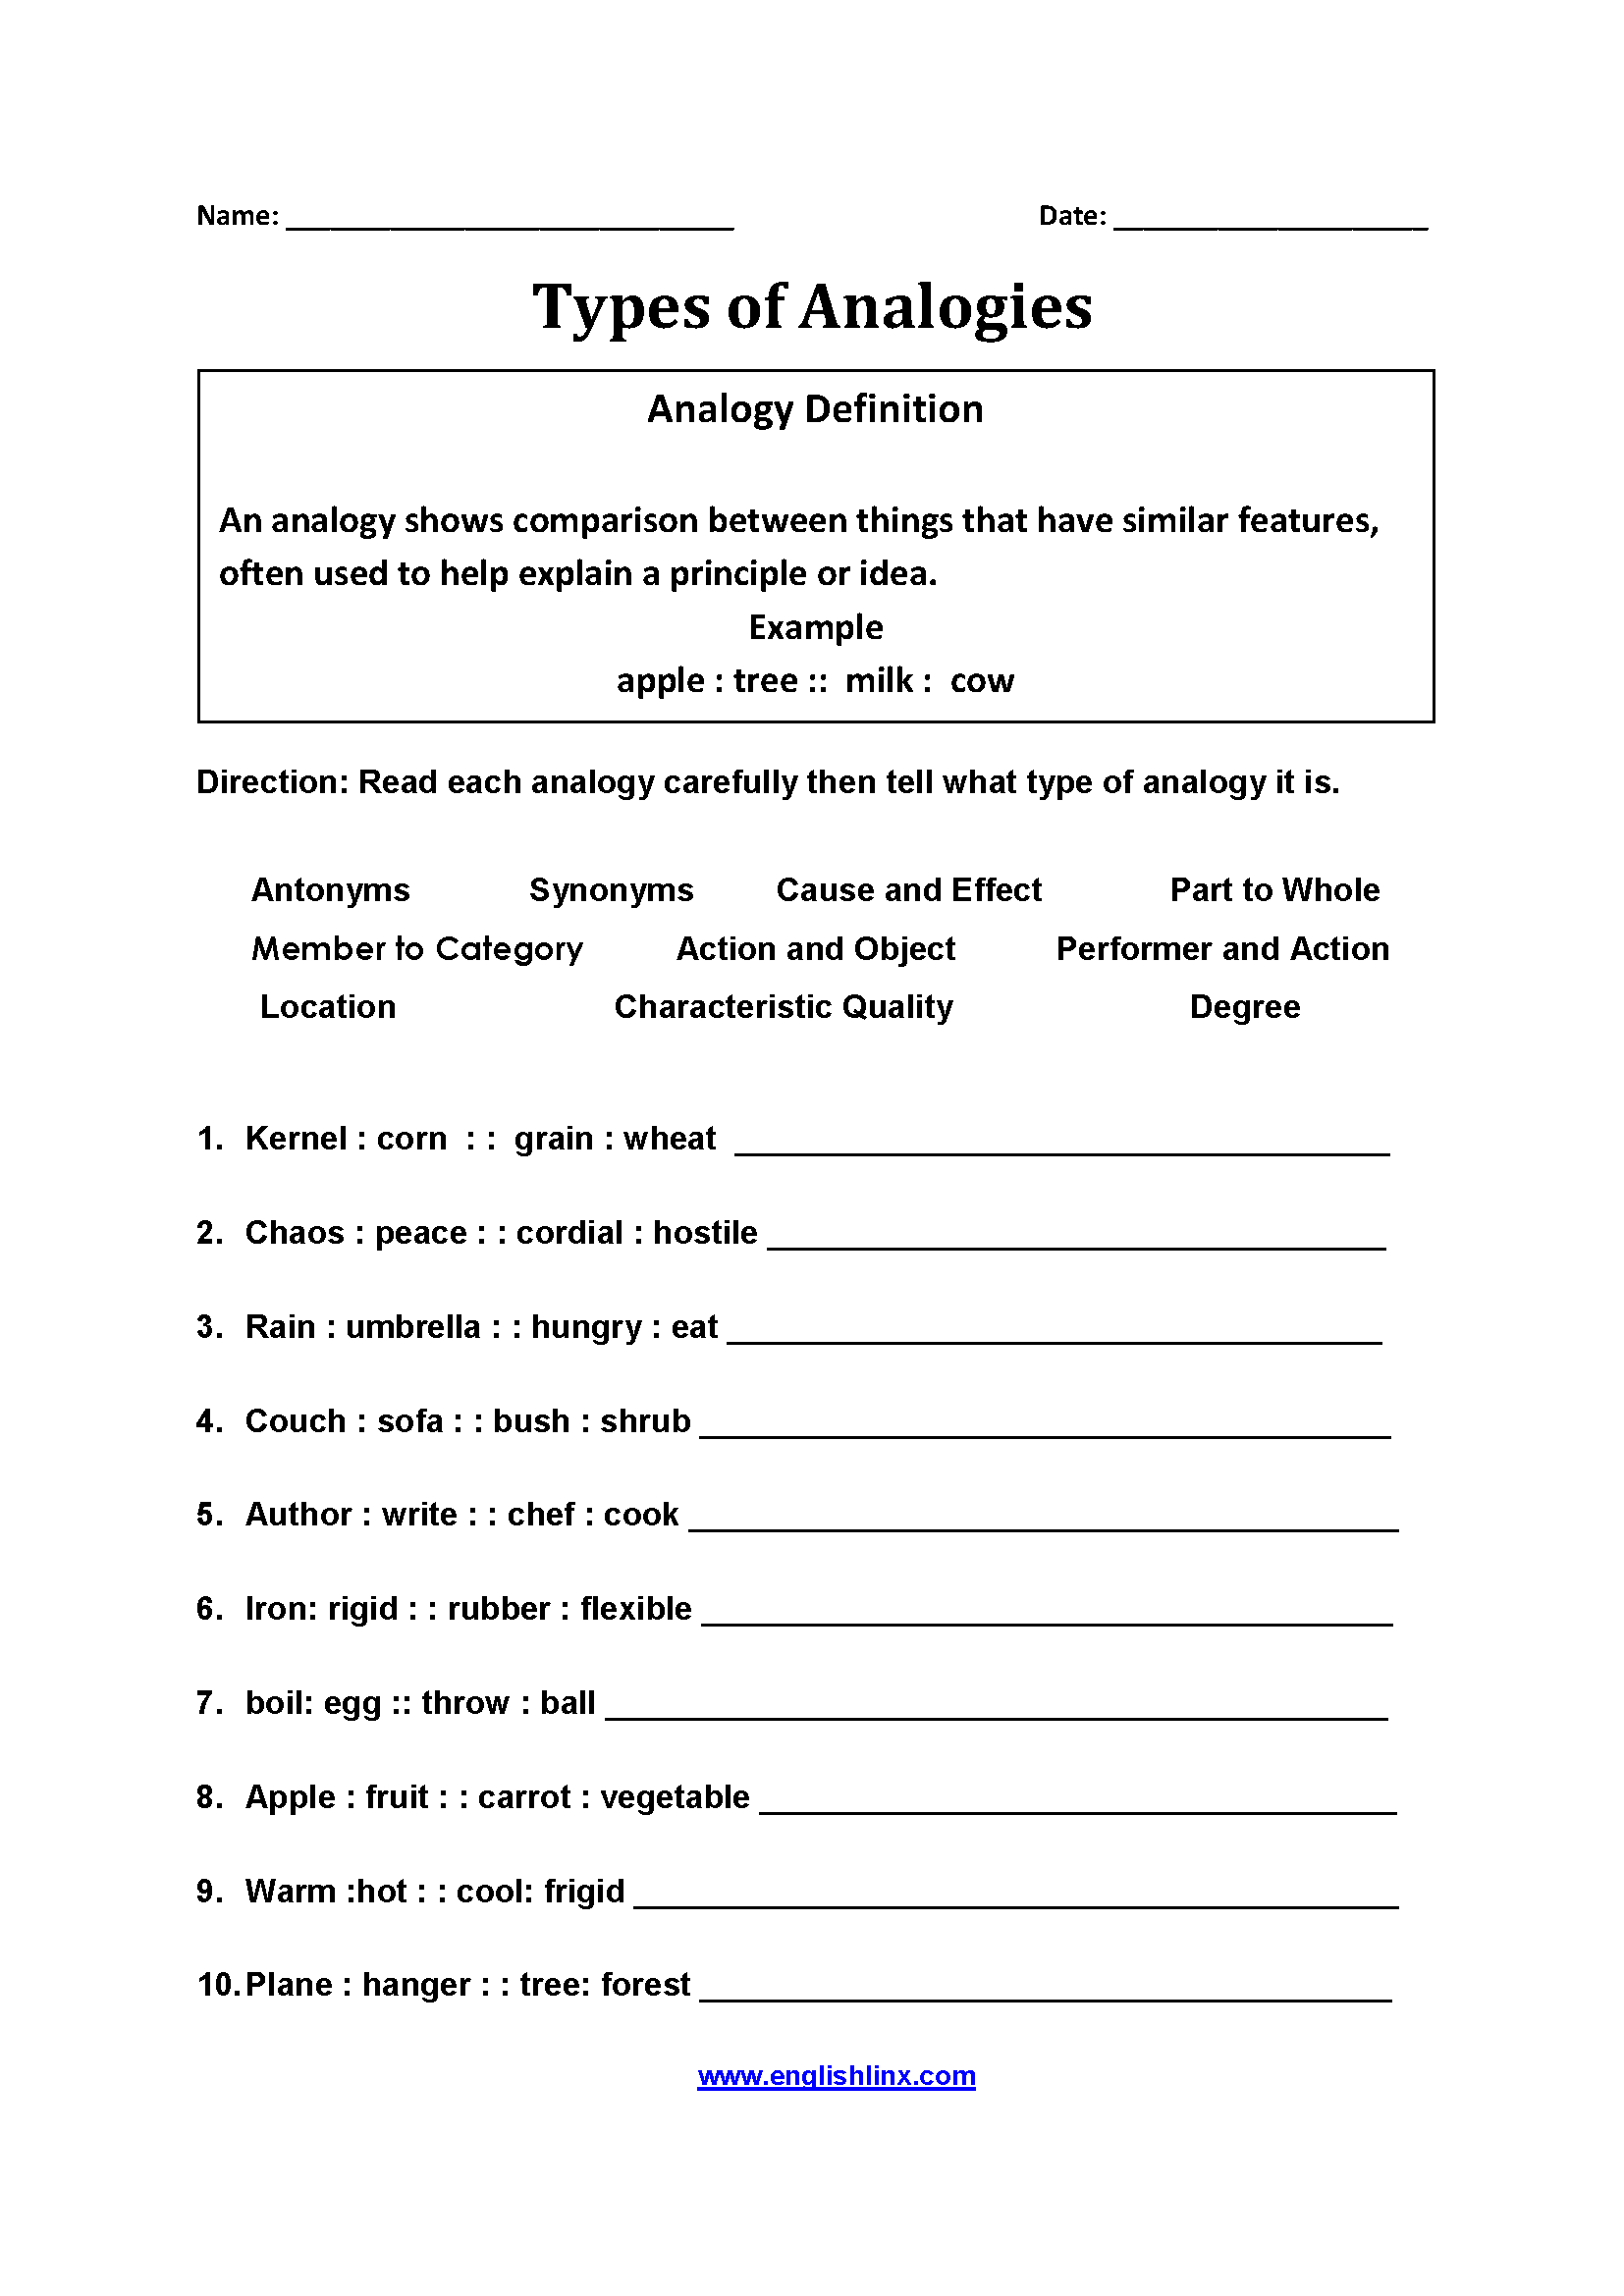 hight resolution of Free Printable Cause And Effect Worksheets 3rd Grade   Printable Worksheets  and Activities for Teachers